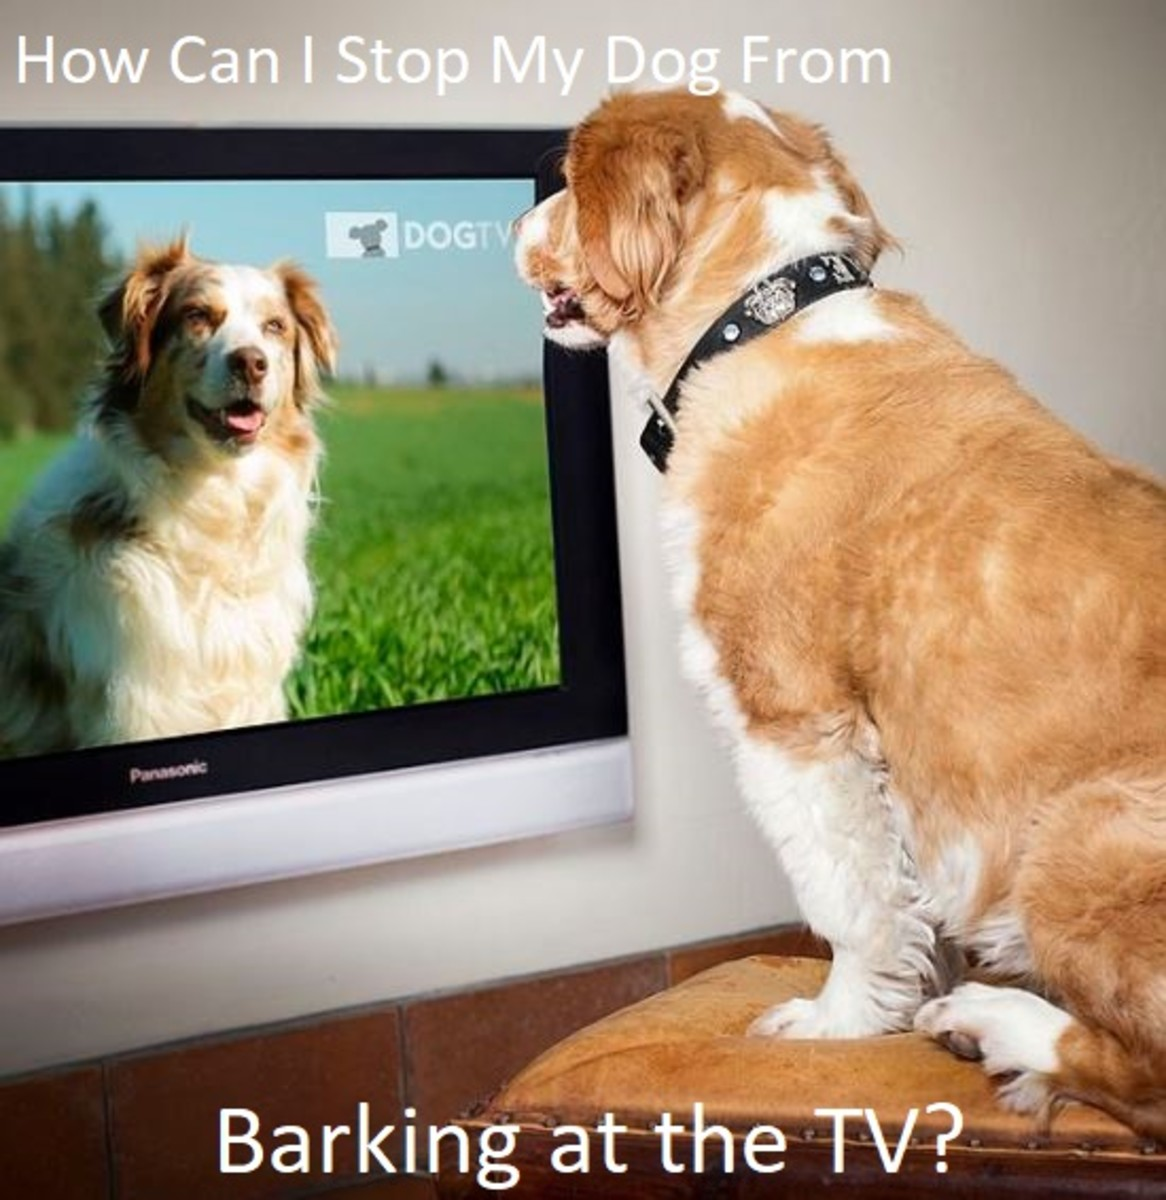 How to Keep a Dog From Barking at the TV